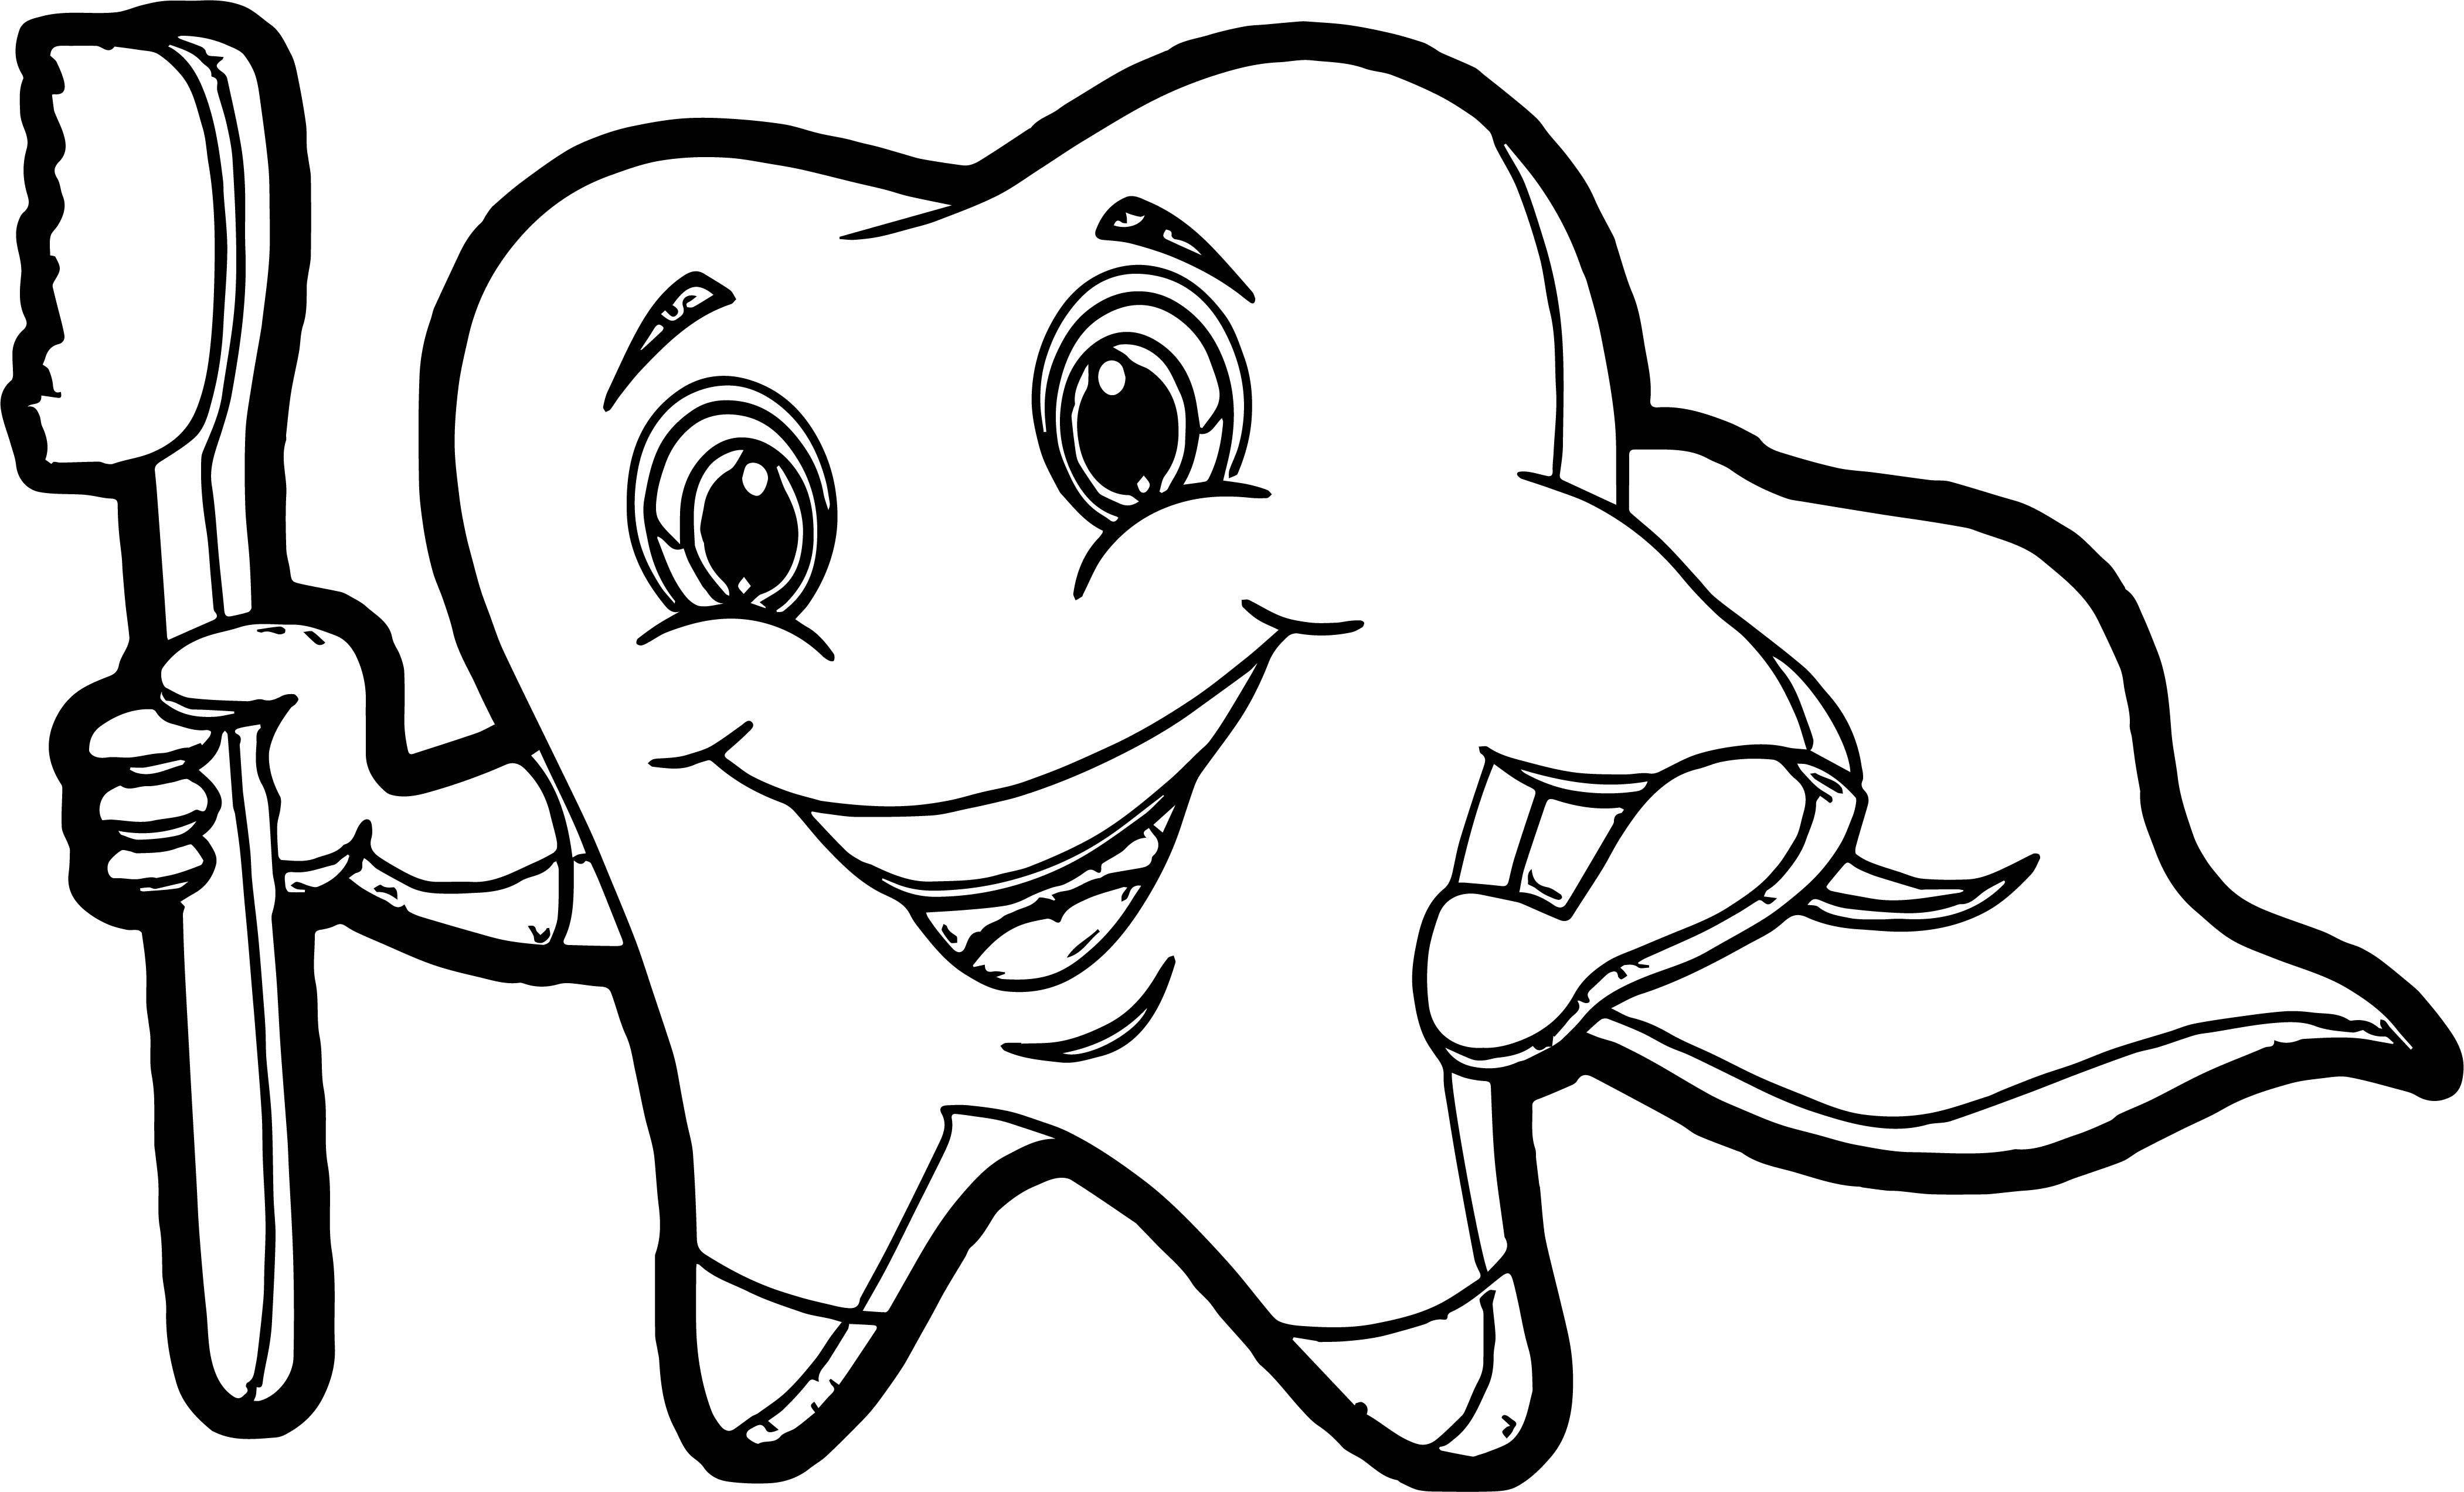 Tooth Cartoon Pictures Of Teeth Coloring Page  Tooth cartoon